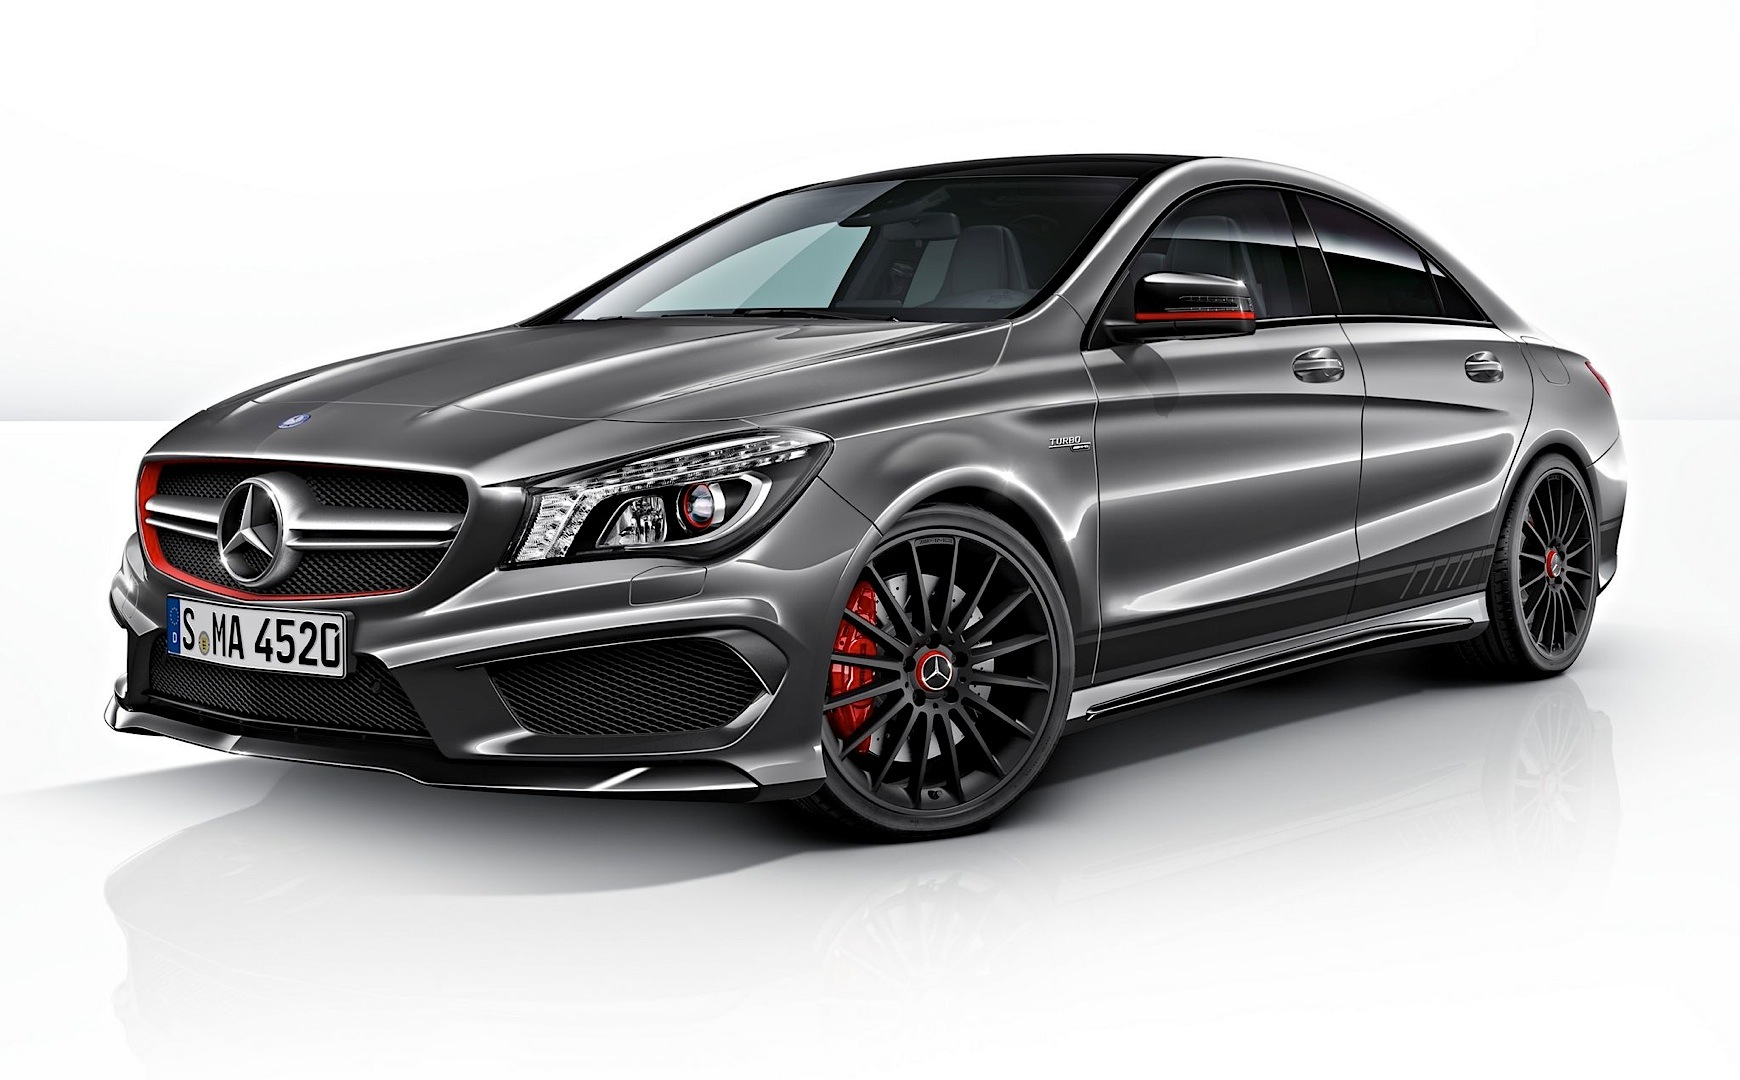 cla 45 amg edition 1 sales are a go autoevolution. Black Bedroom Furniture Sets. Home Design Ideas